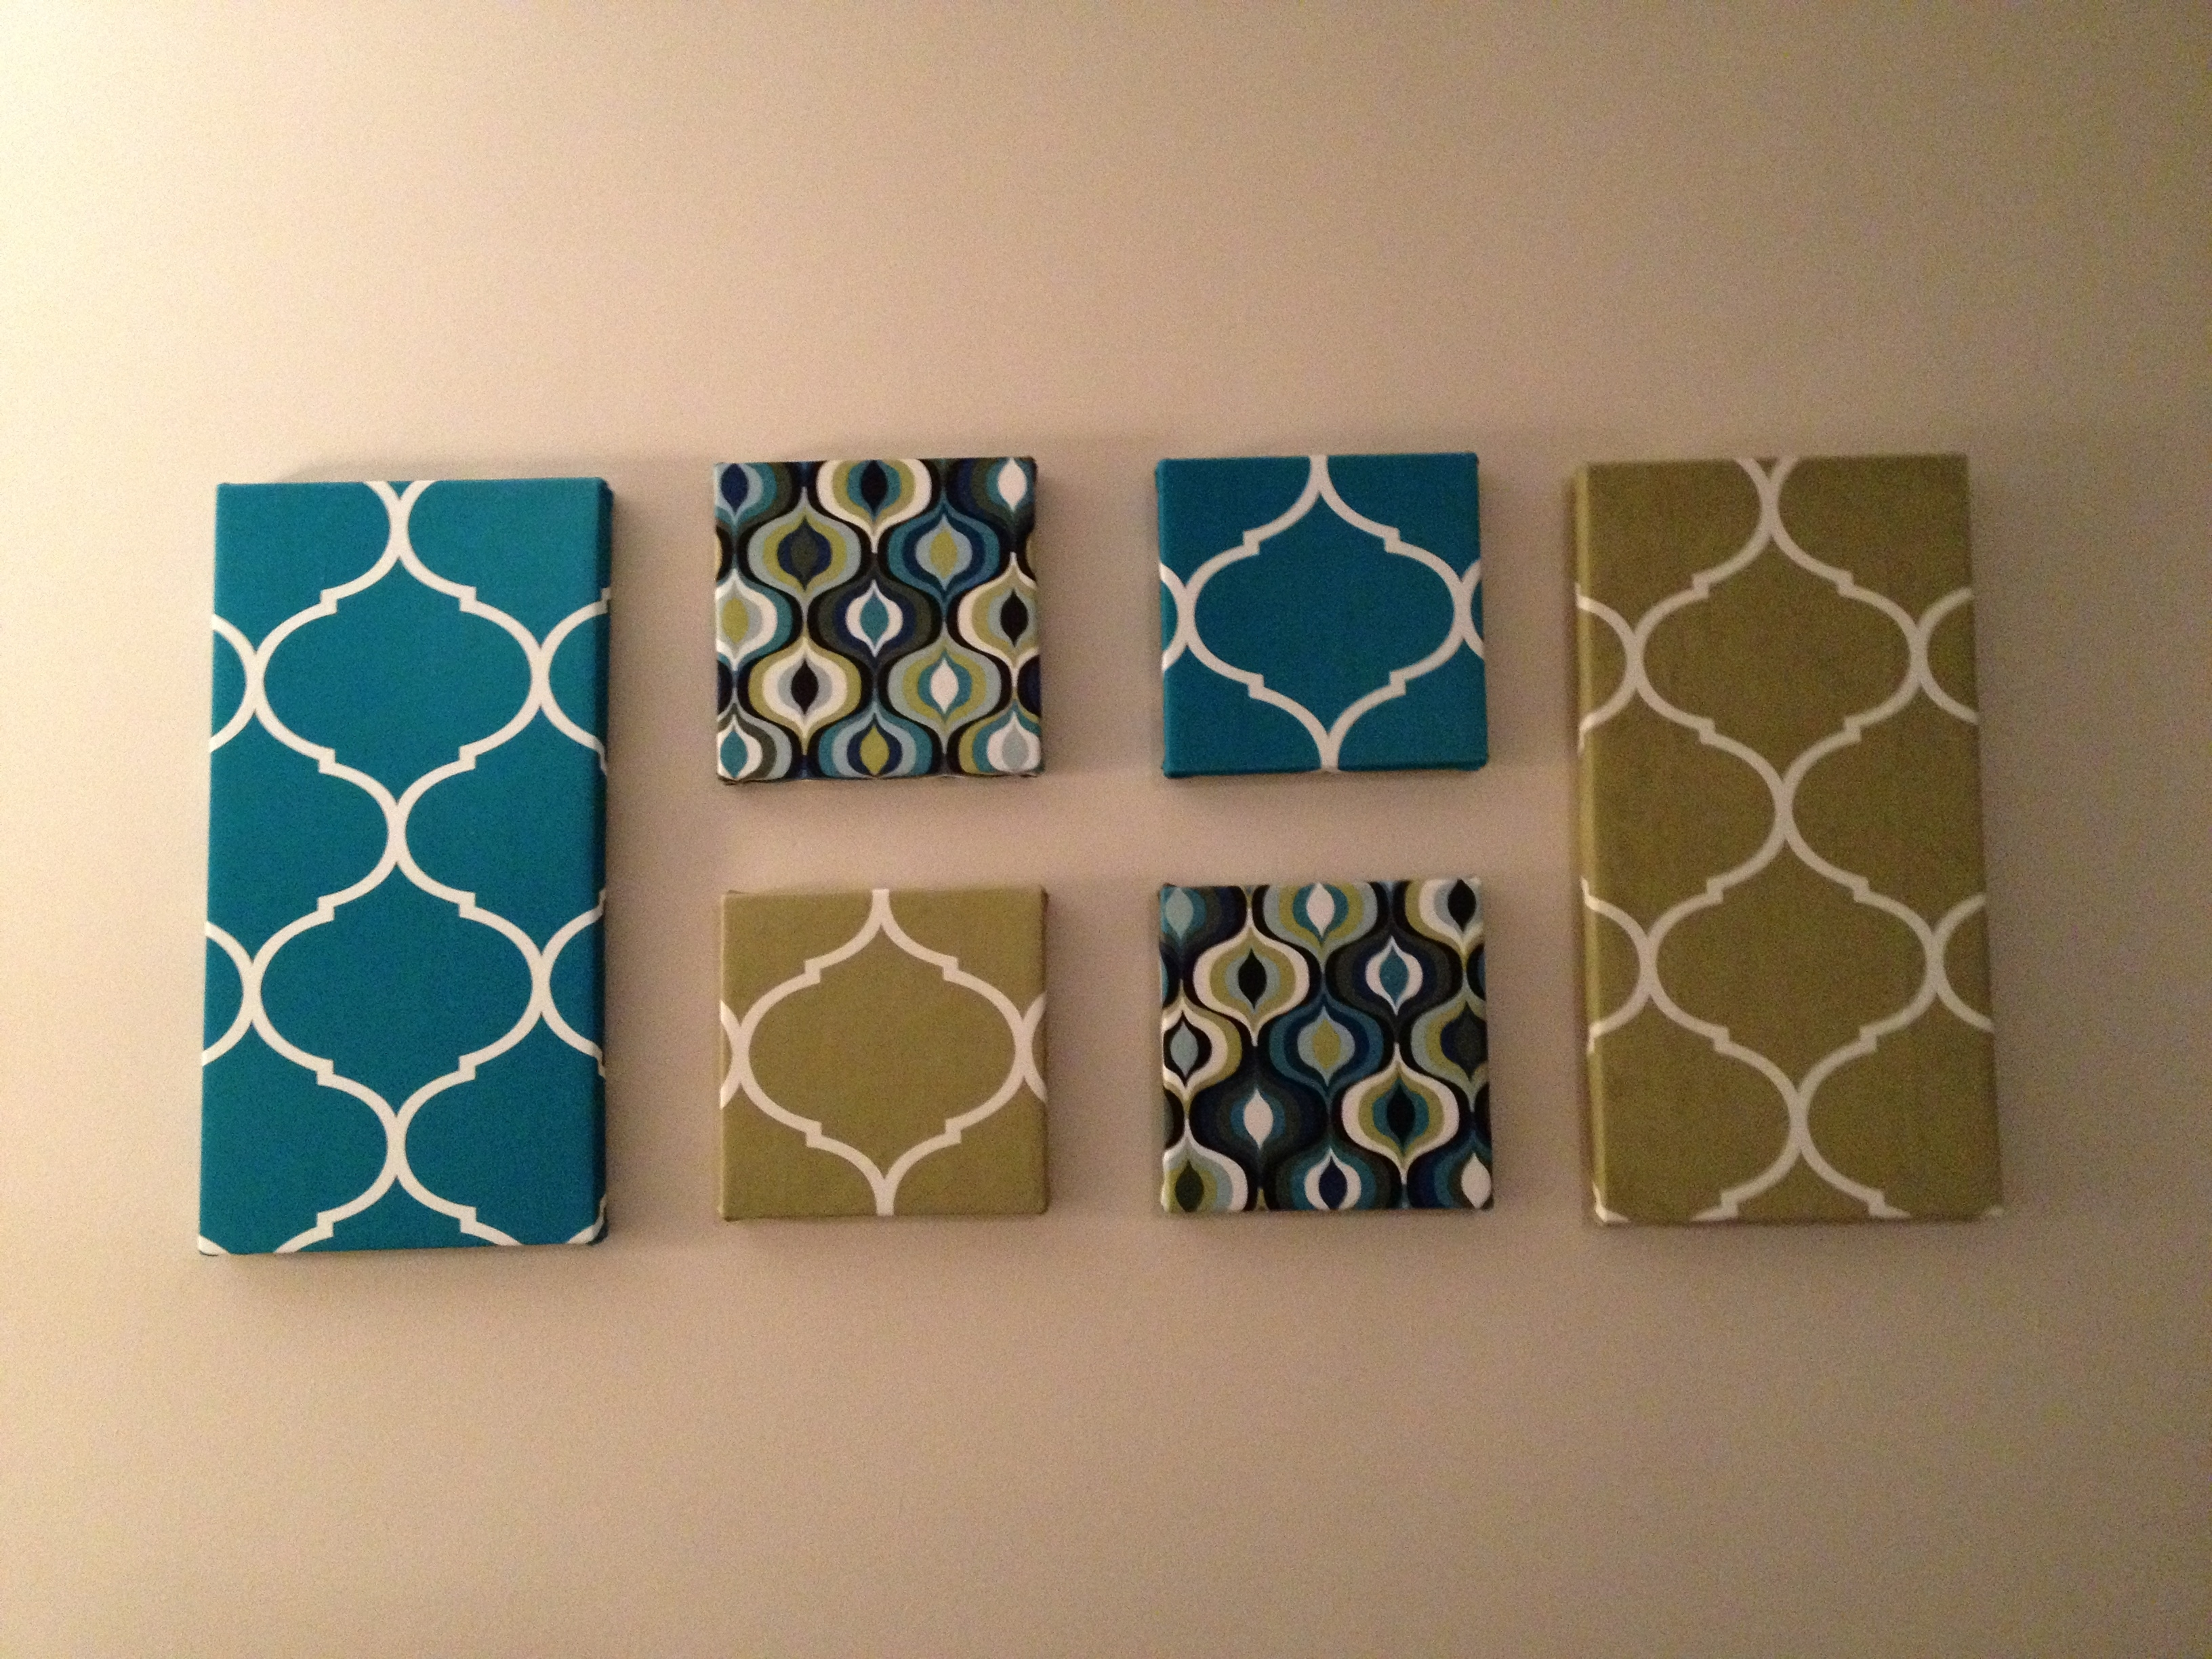 Fabric Wall Designs There Are More Patchwork Wall Decor Ideas With Most Recent Fabric Wall Accents (View 7 of 15)